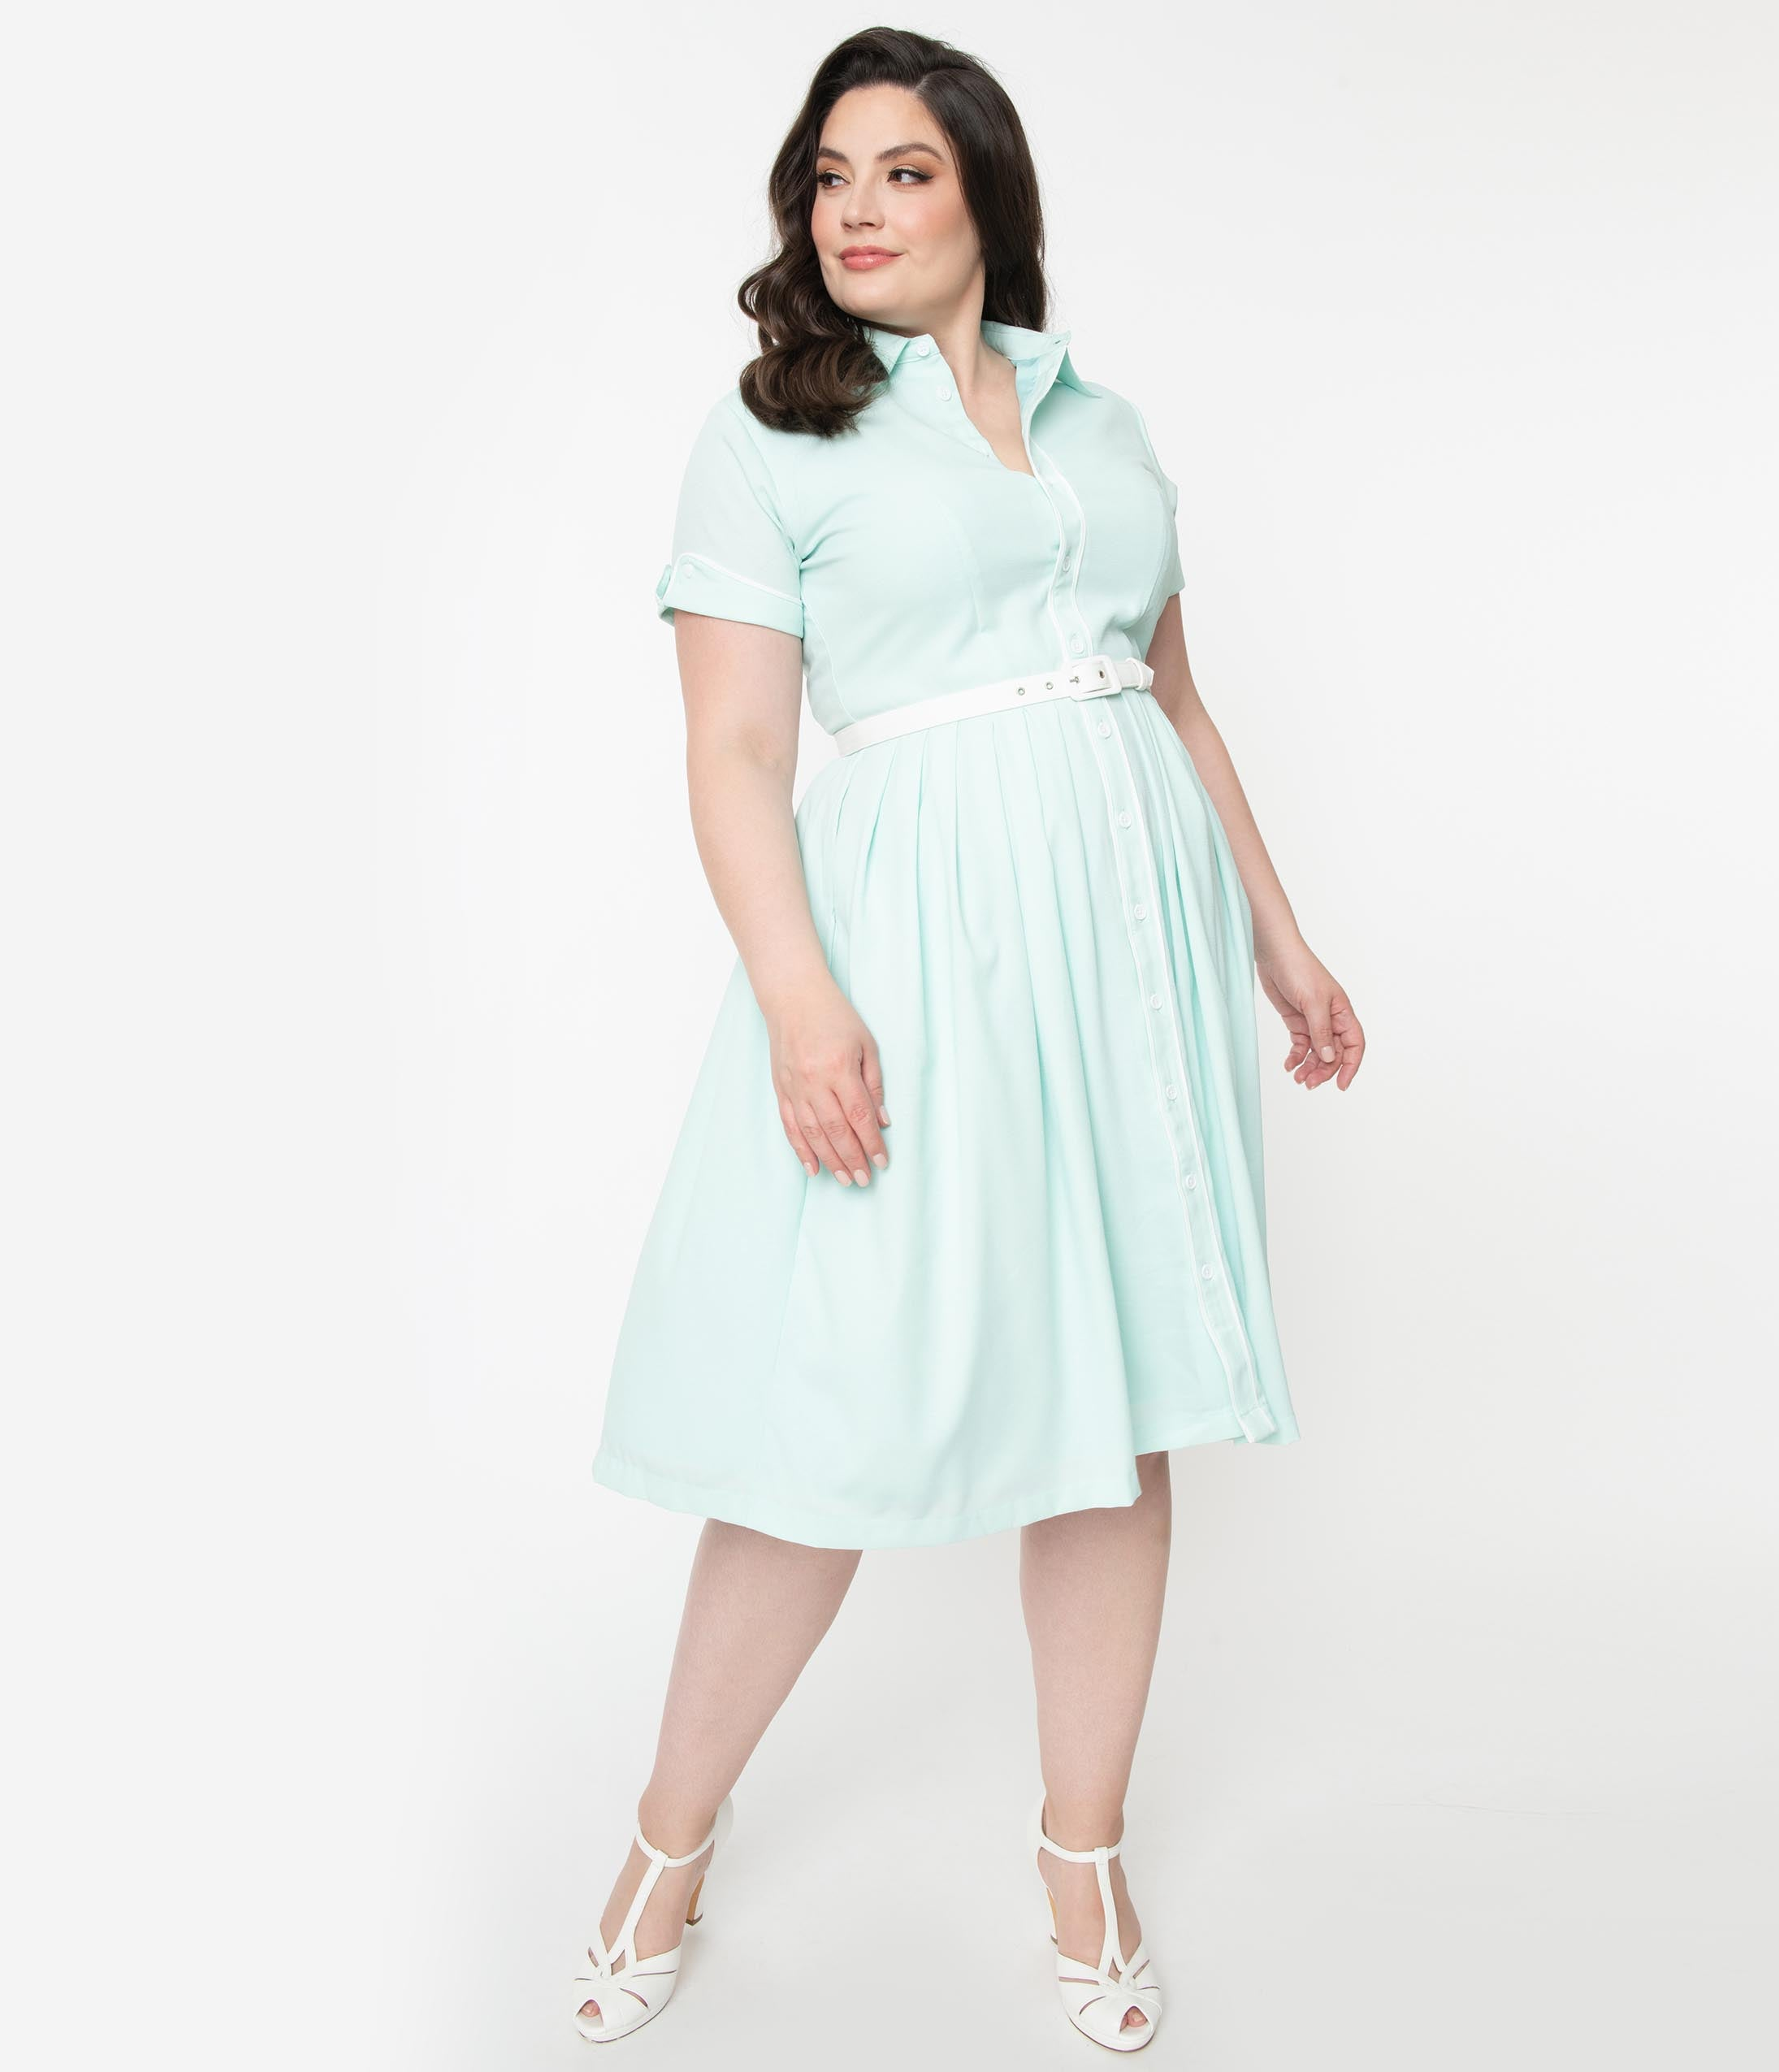 1950s Plus Size Dresses, Swing Dresses Plus Size 1950S Style Sky Blue Mint Swing Dress $118.00 AT vintagedancer.com